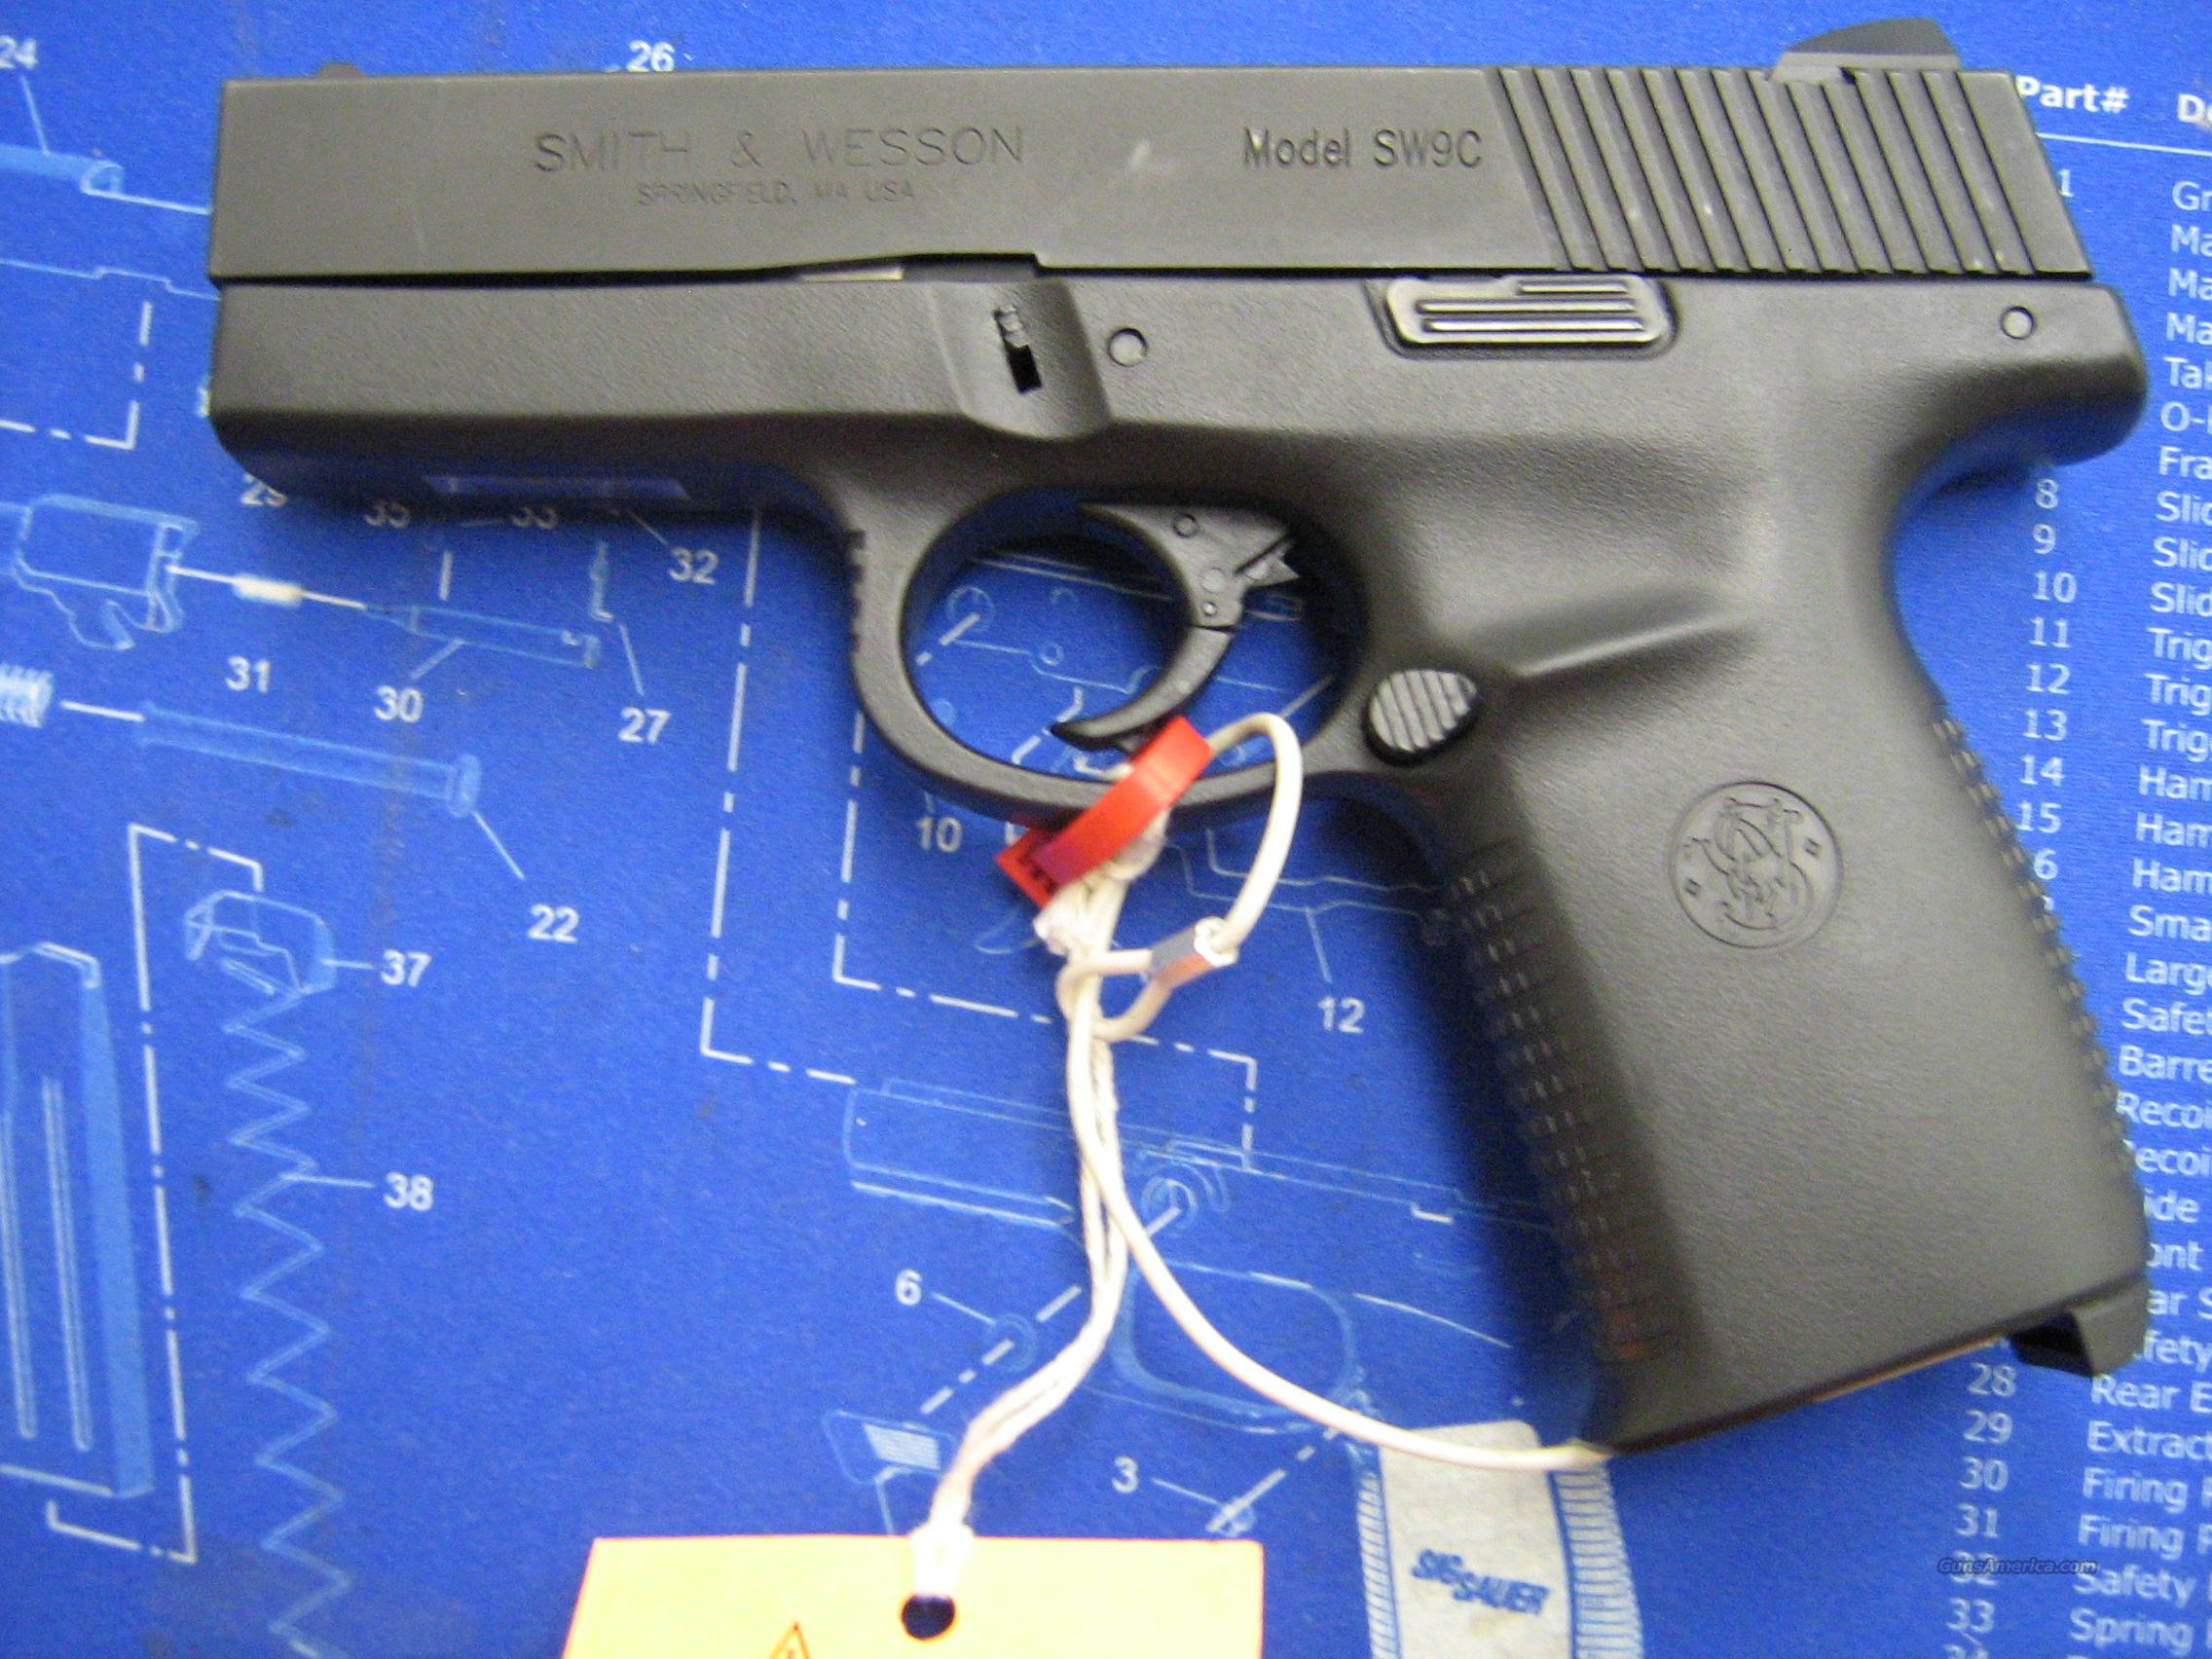 Smith & Wesson SW9C  Guns > Pistols > Smith & Wesson Pistols - Autos > Polymer Frame